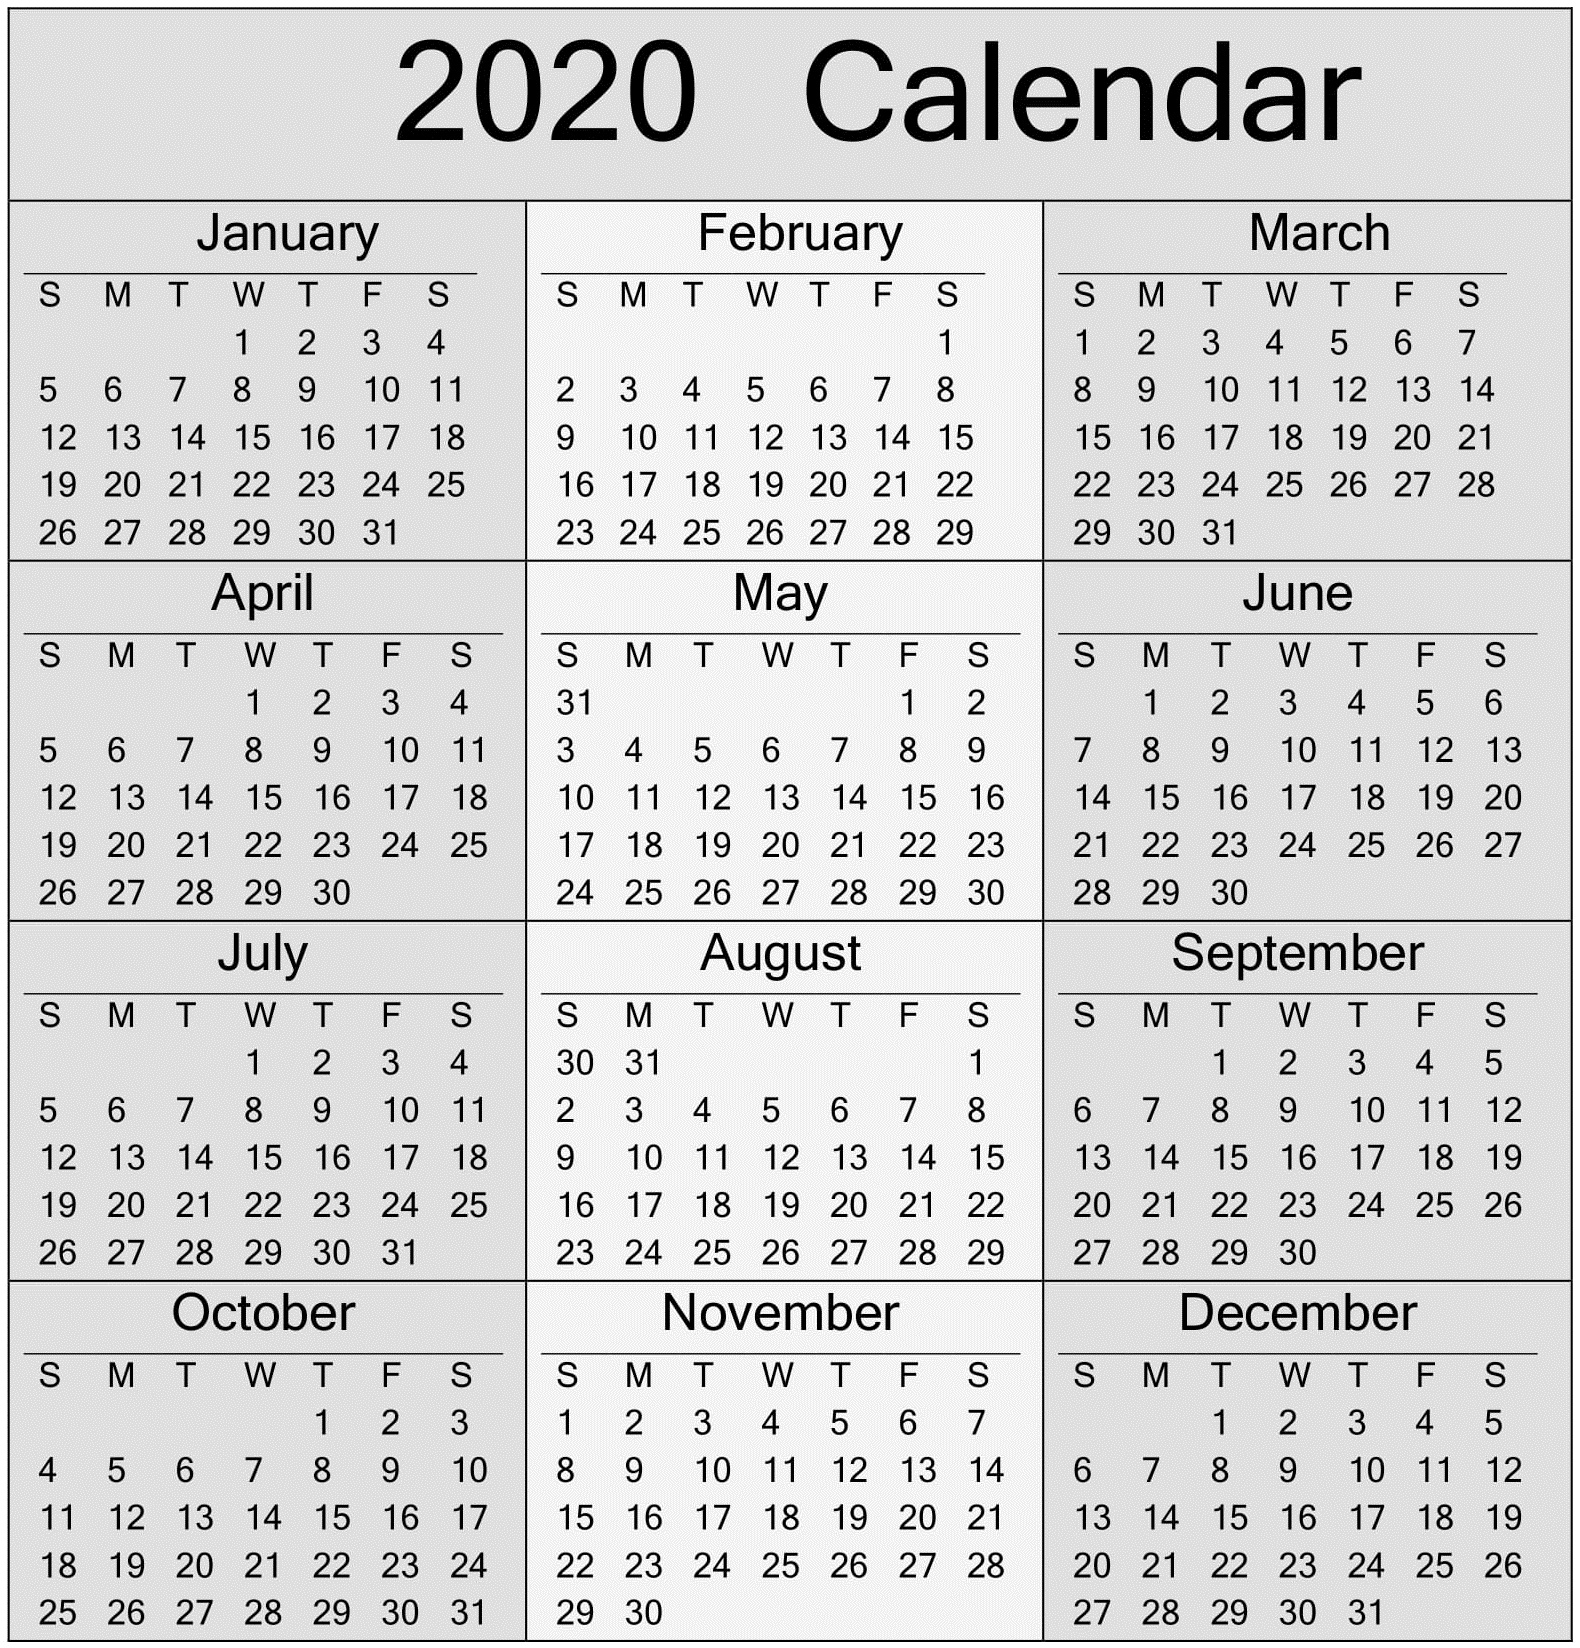 Free Printable Yearly 2020 Calendar And Holiday Templates